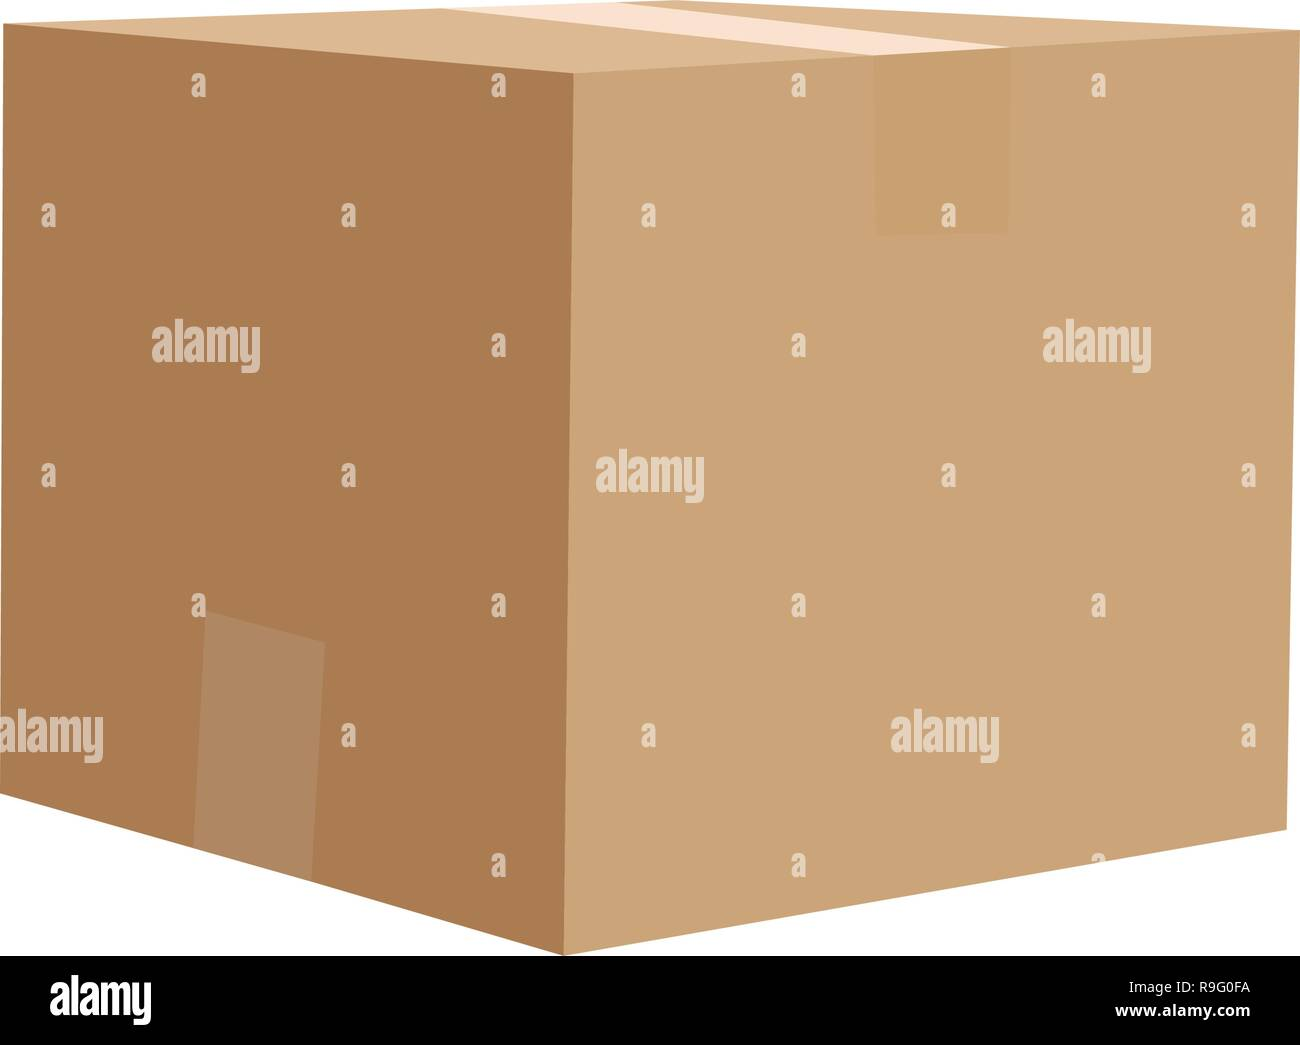 Closed cardboard box vector illustration isolated on white background - Stock Vector